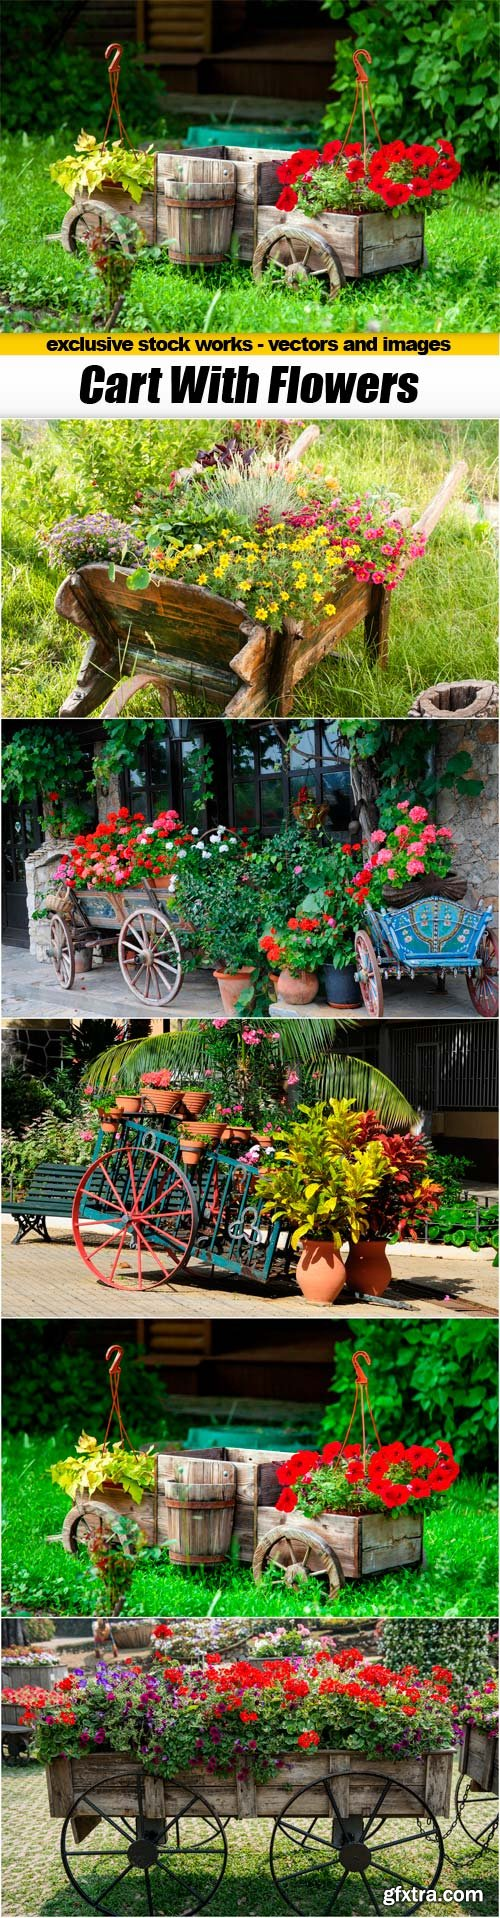 Cart With Flowers - 5x JPEGs